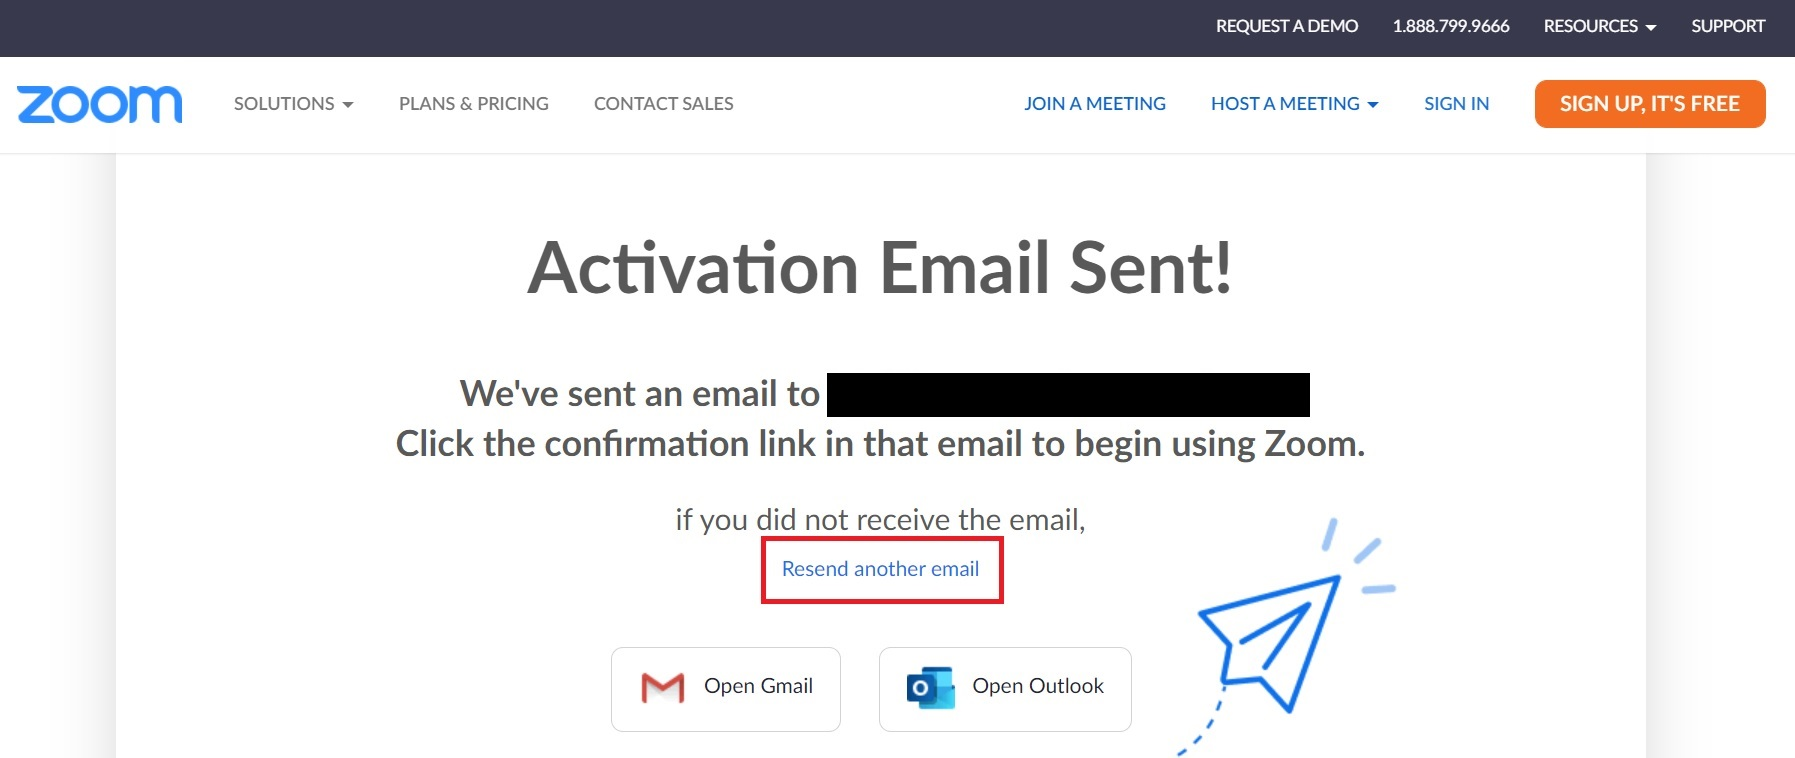 Zoom activation email sent